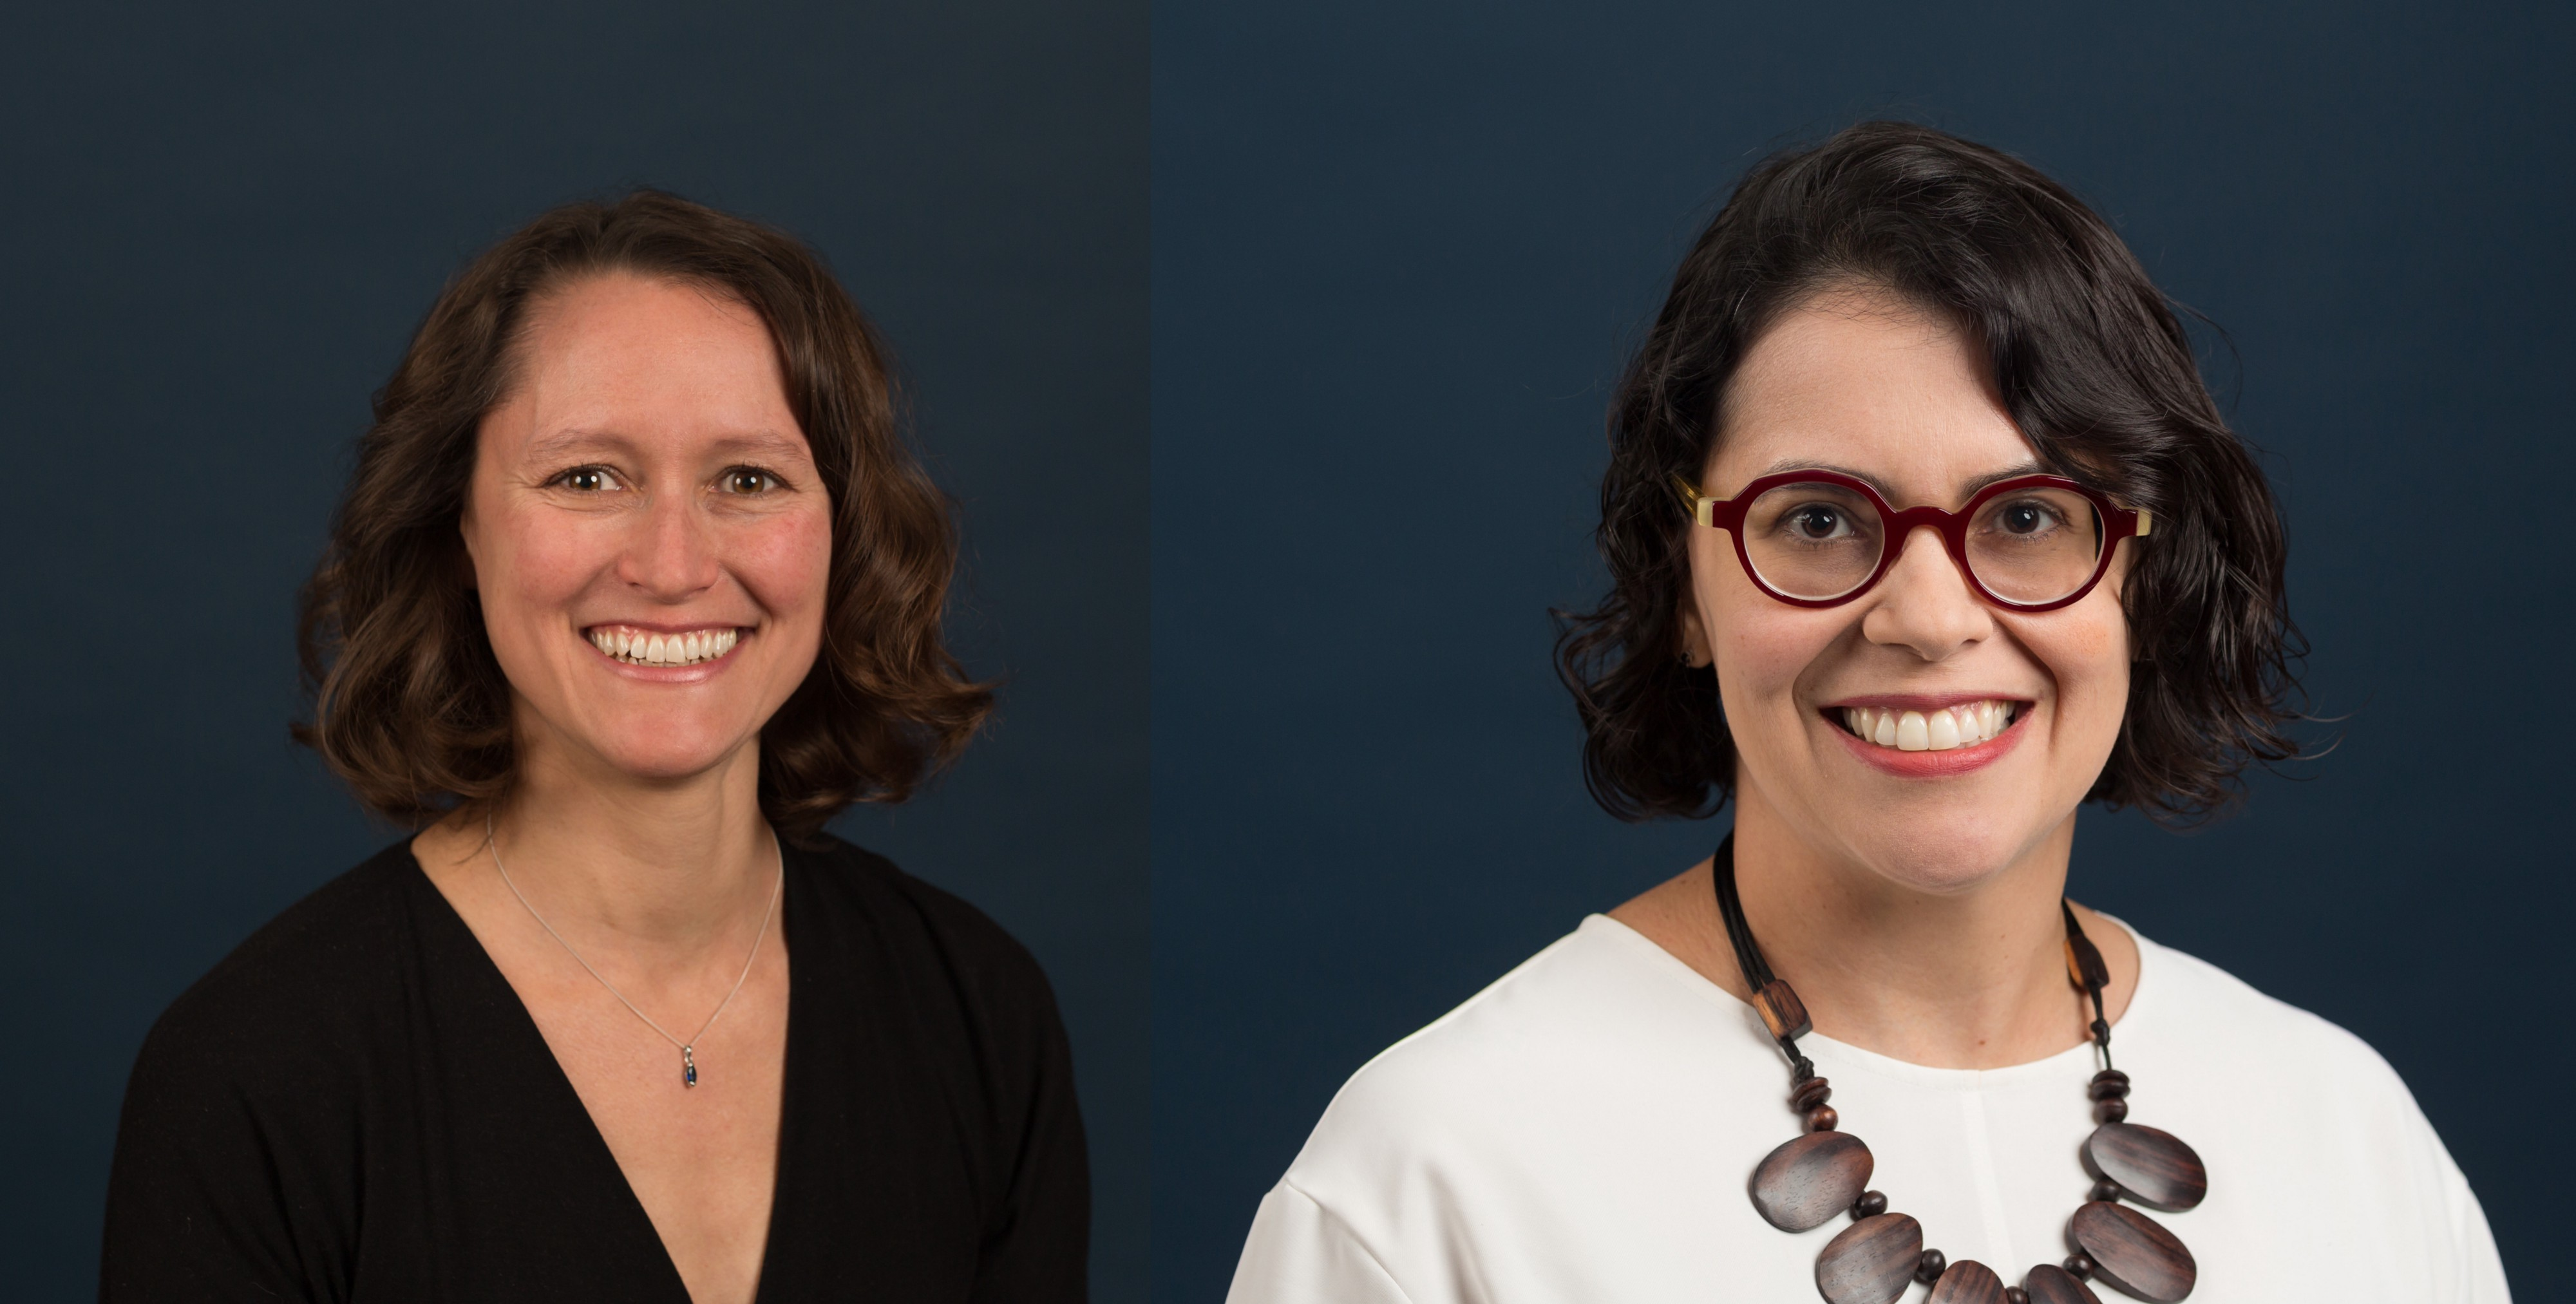 Outgoing Planet Texas 2050 Chair Heather Houser (left) and new Planet Texas 2050 Chair Fernanda Leite (right).